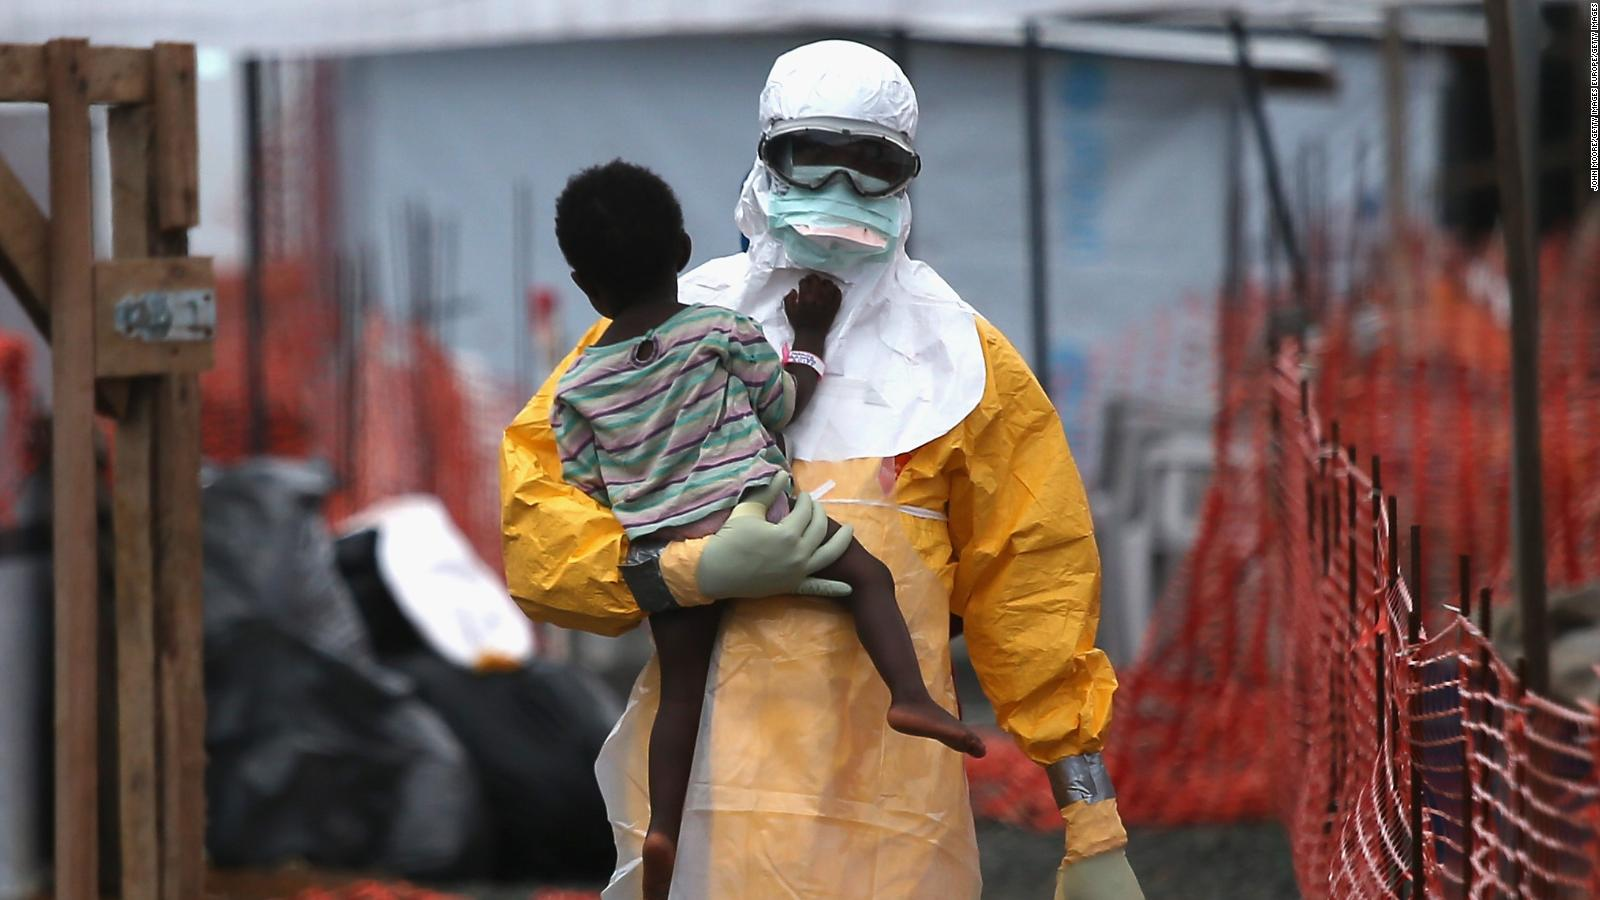 Ebola Outbreak Keeps Surging in DRC with More Than 1000 Cases